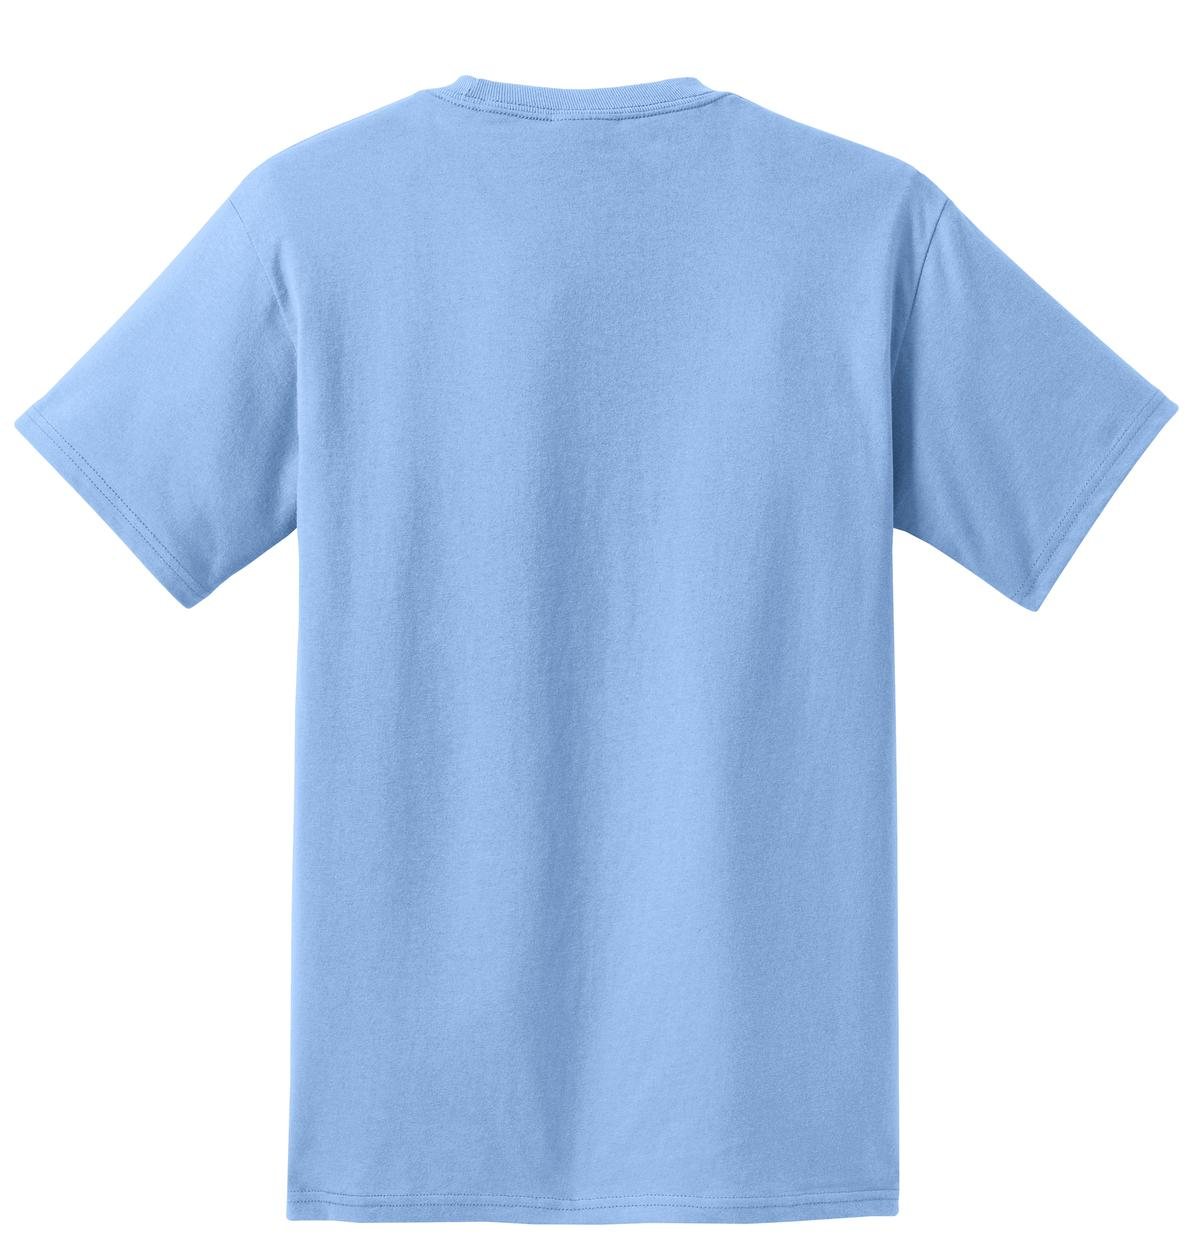 Men's Essential T Shirt with Pocket Light Blue